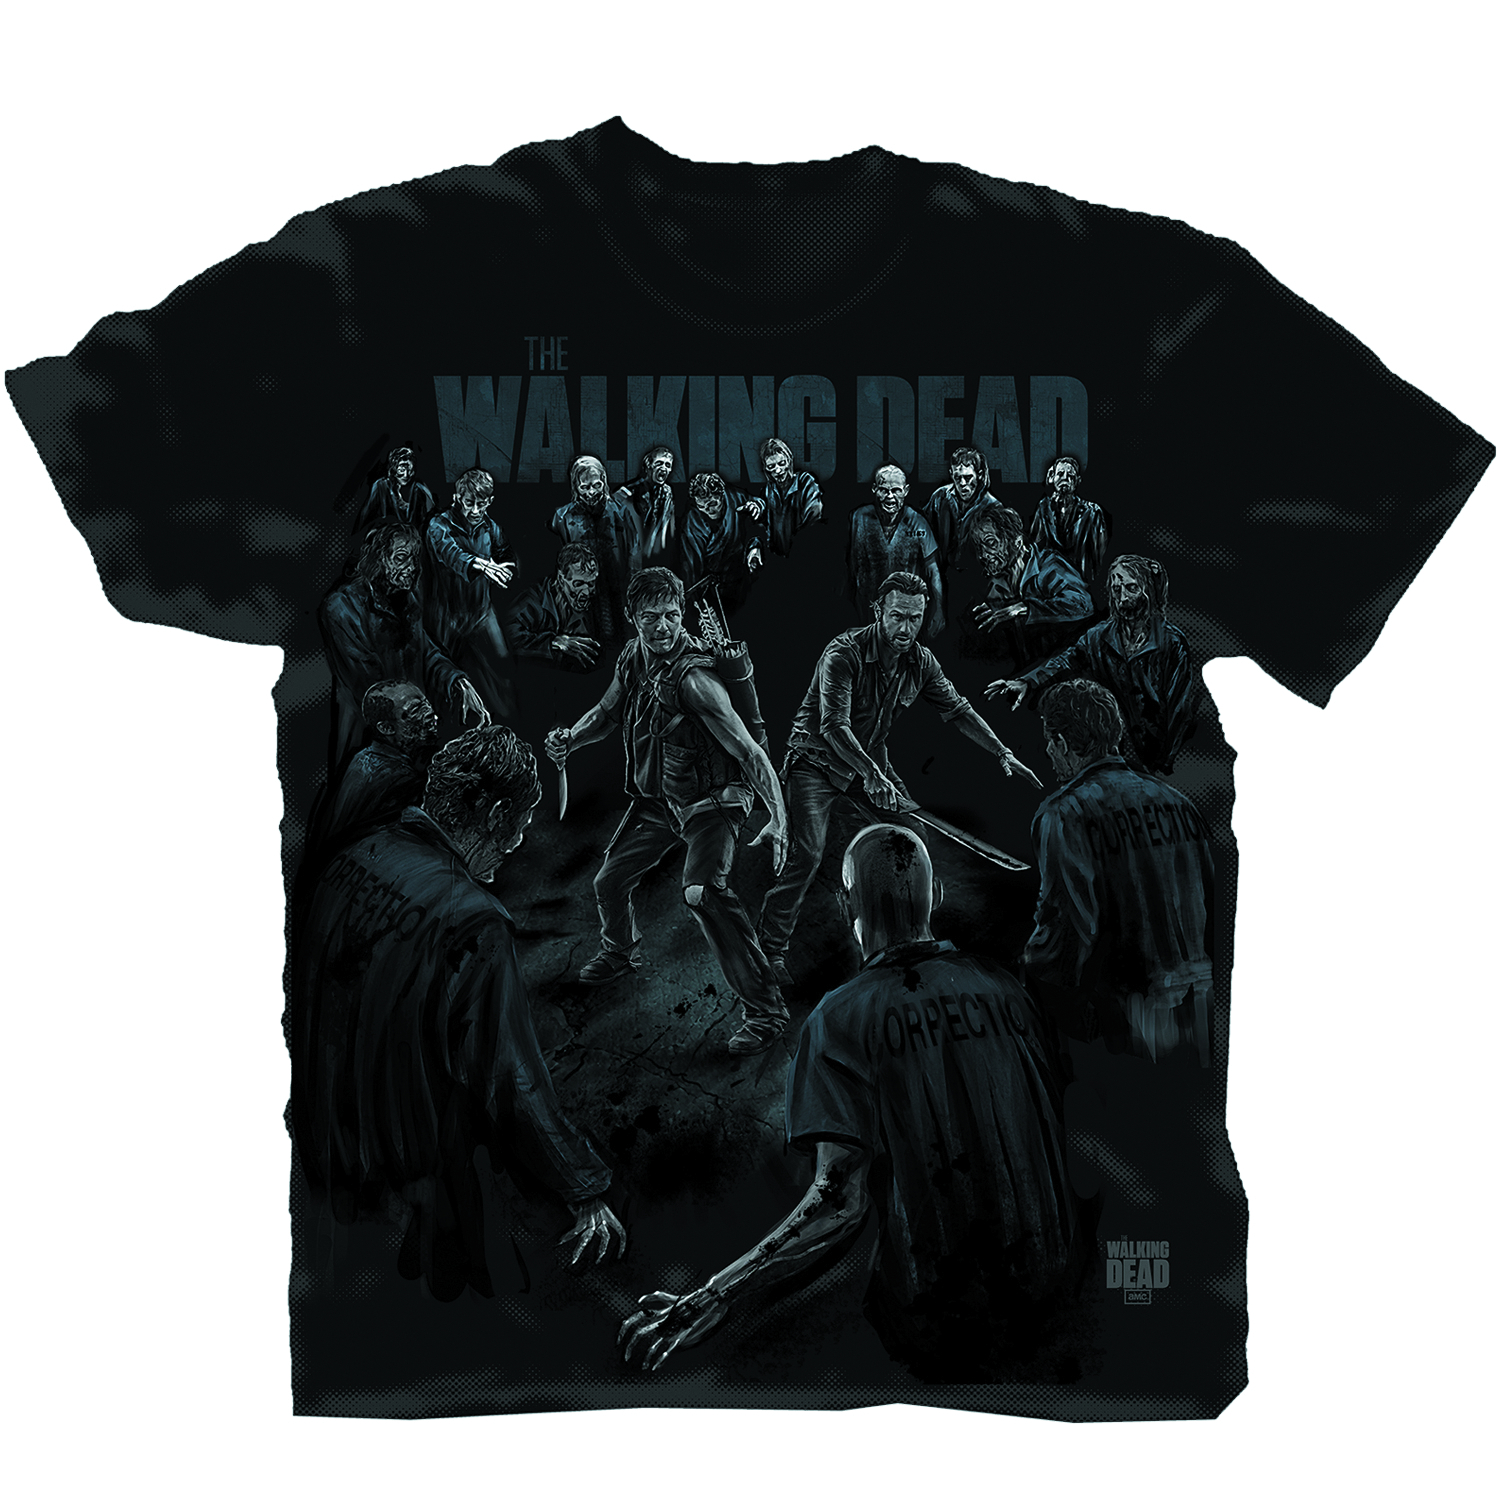 WALKING DEAD PROTECT THE GROUP BLK T/S MED